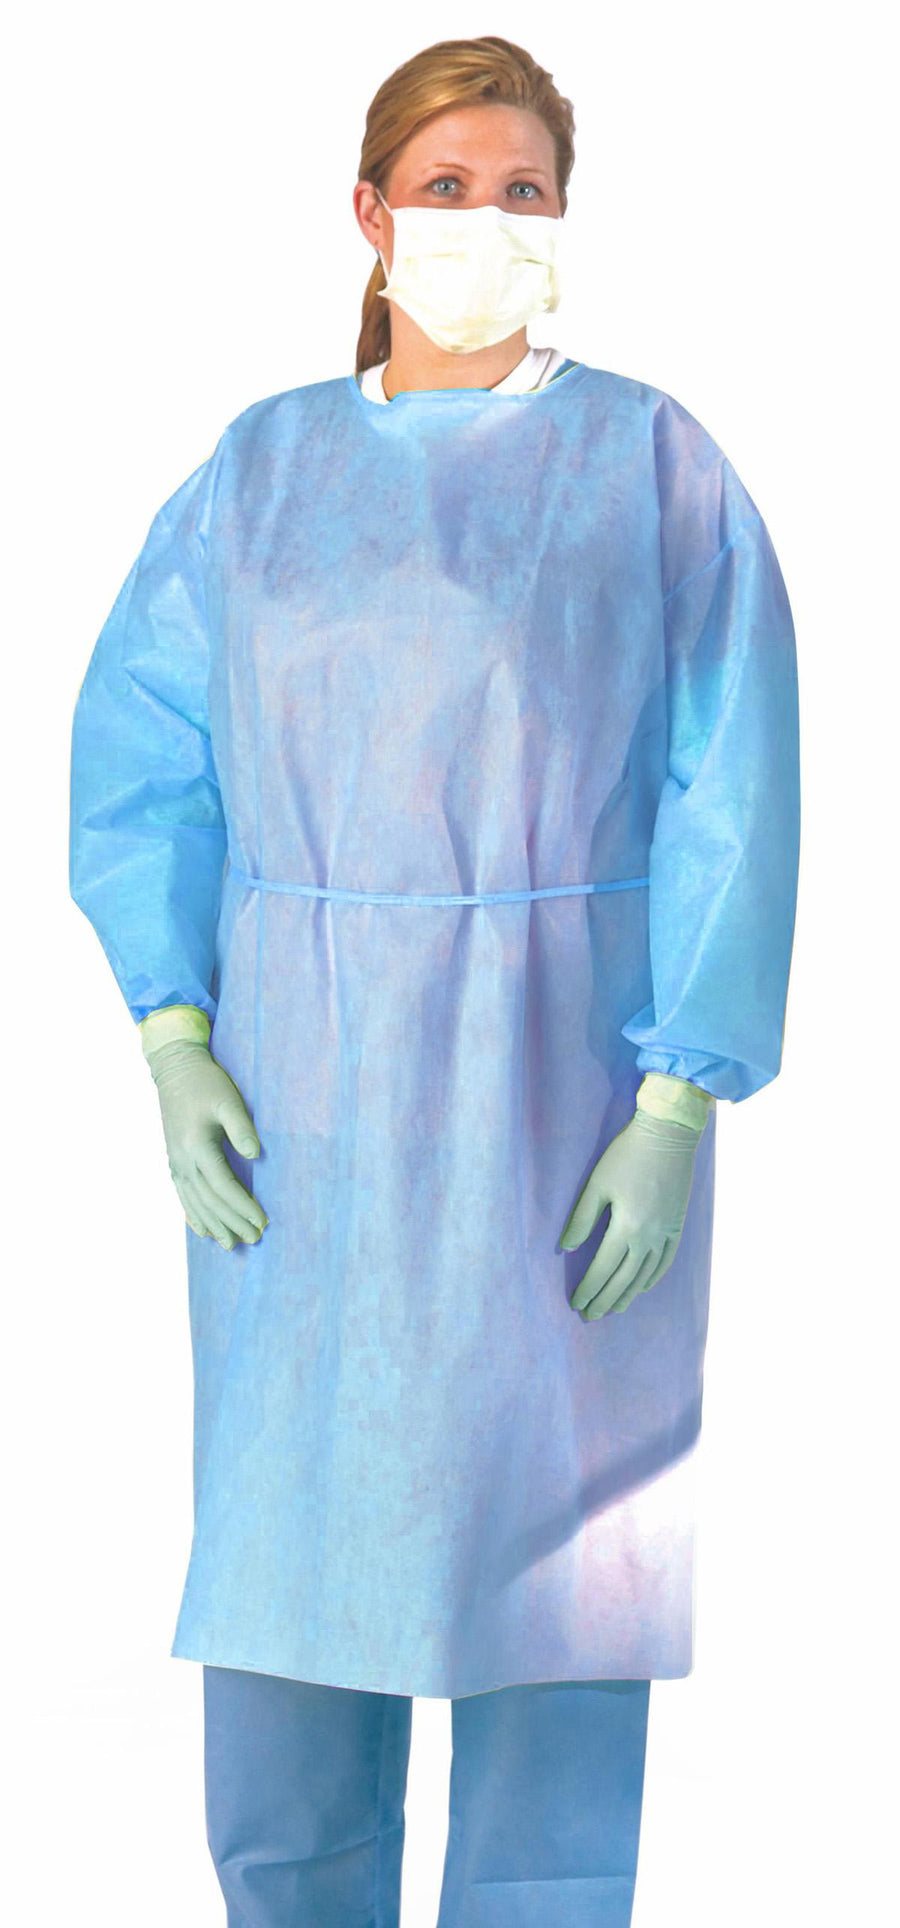 Medium Weight Multi-Ply Fluid Resistant Isolation Gown,Blue,X-Large, Case of 100